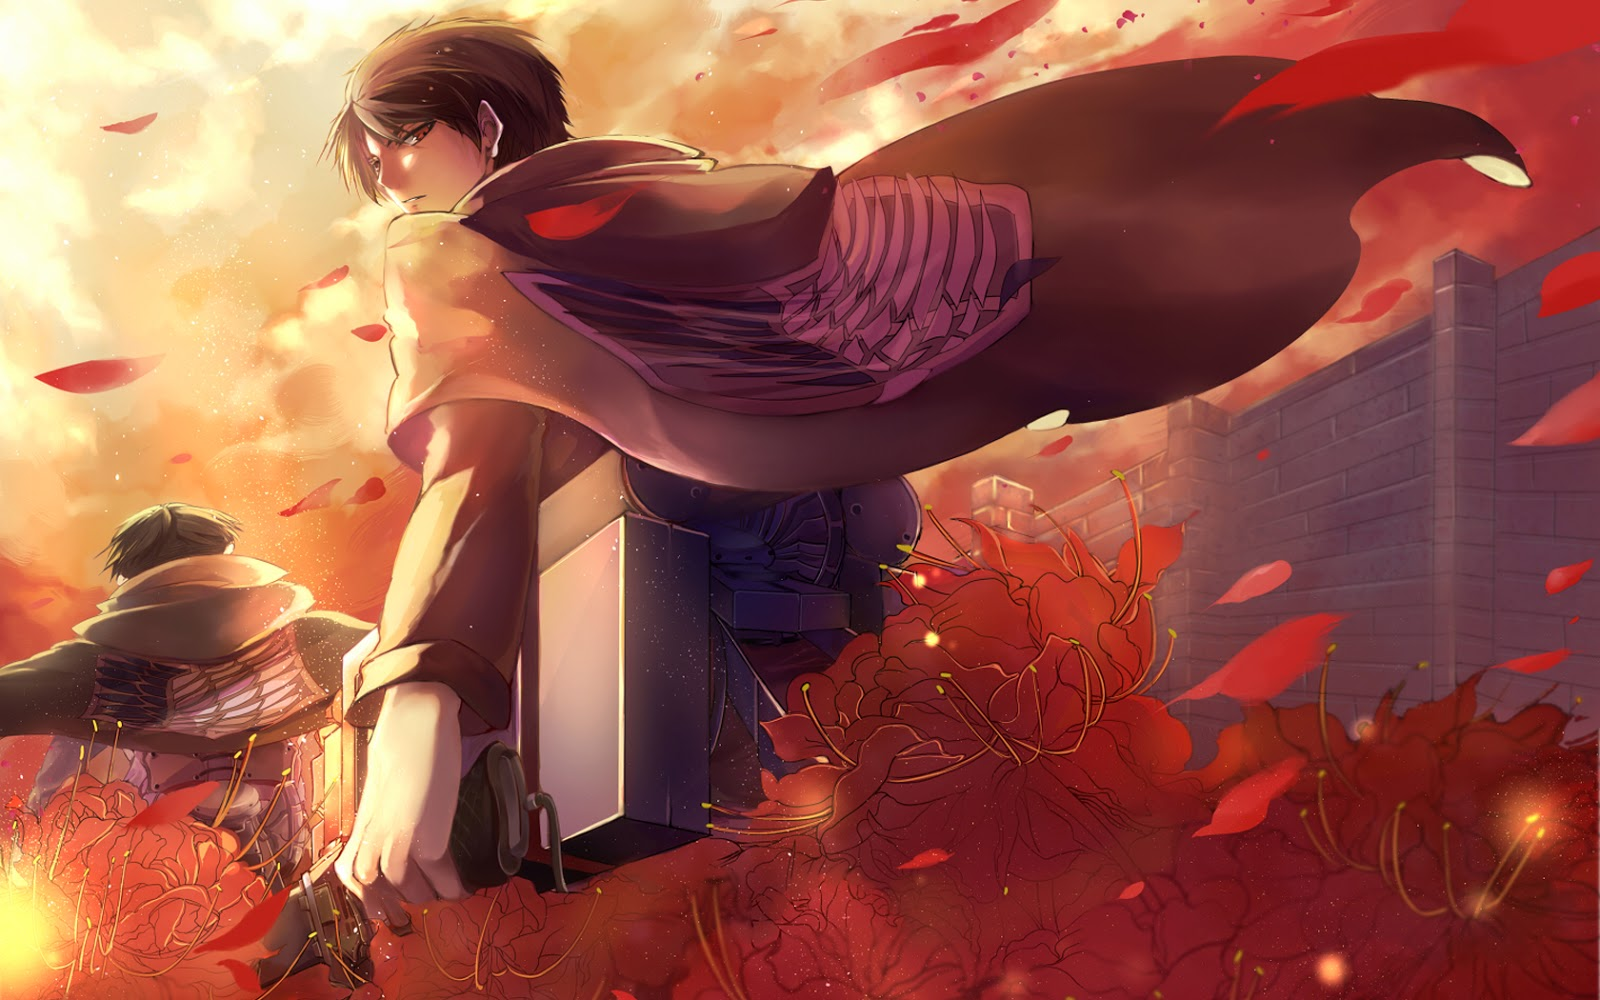 Attack On Titan Levi Wallpaper Attack On Titan Levi Hd 471349 Hd Wallpaper Backgrounds Download